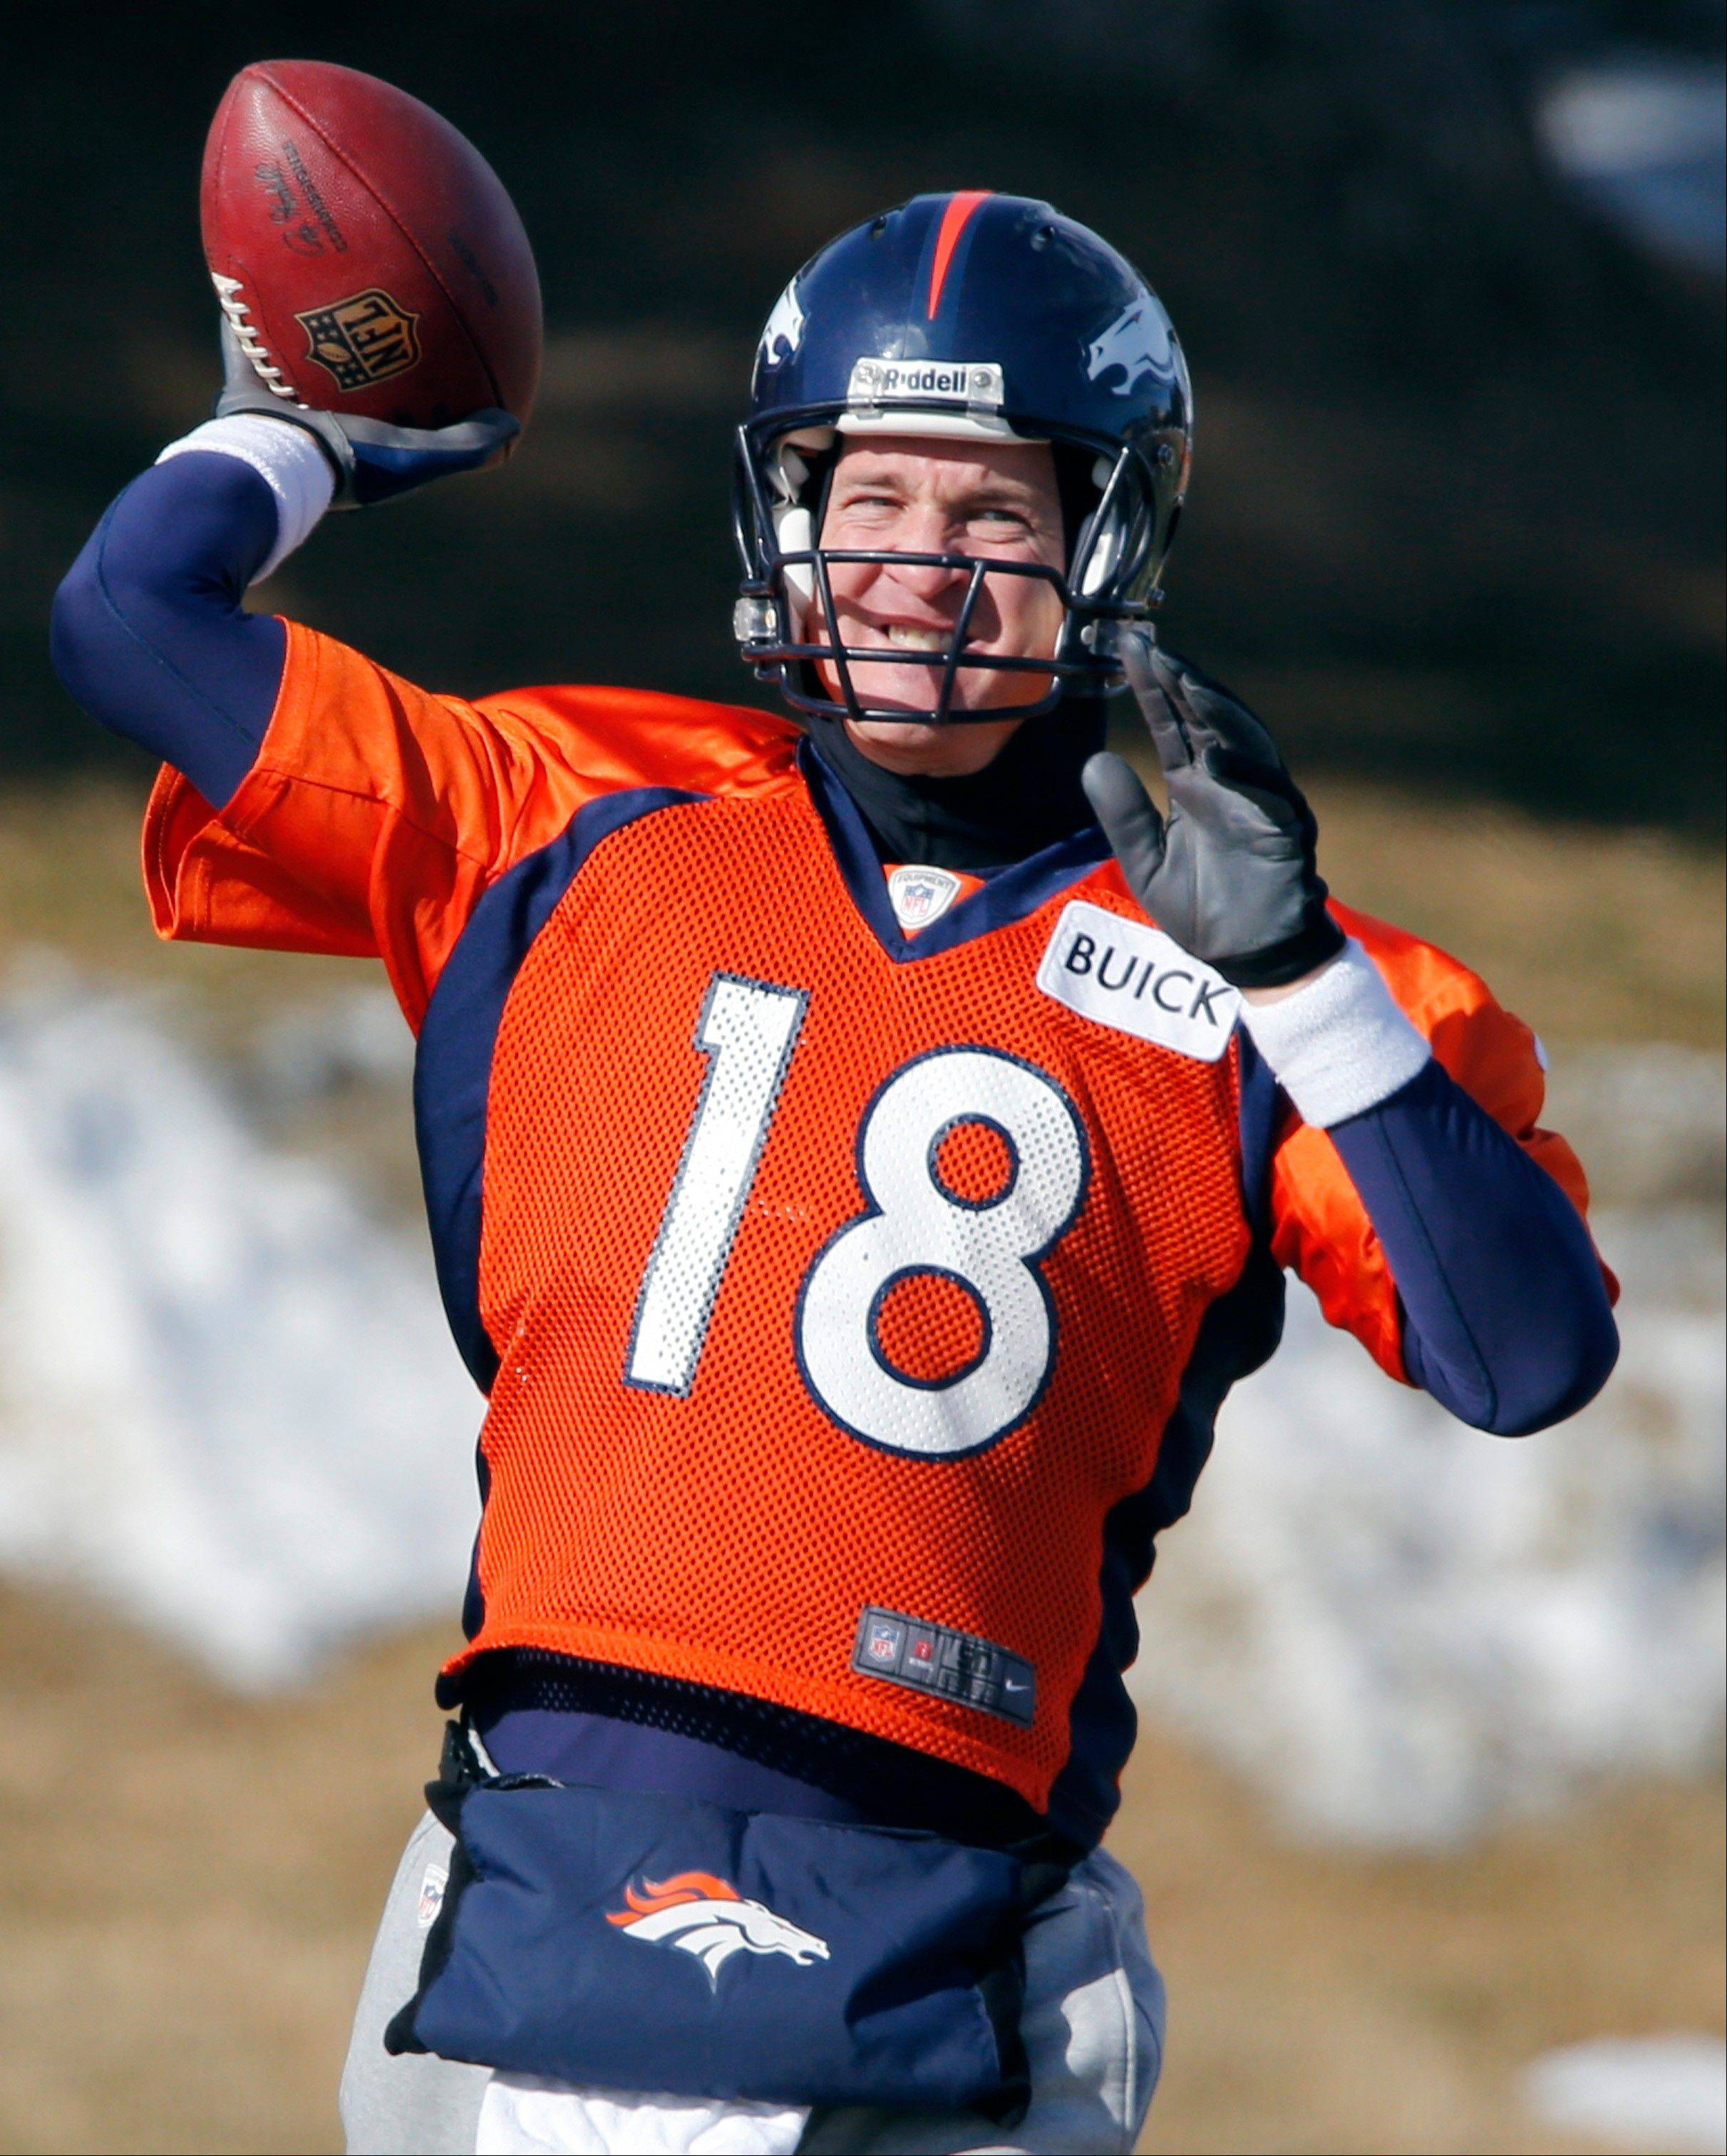 Taking some time off the play clock would give Peyton Manning less time to audible and drive some NFL fans crazy with his histrionics.